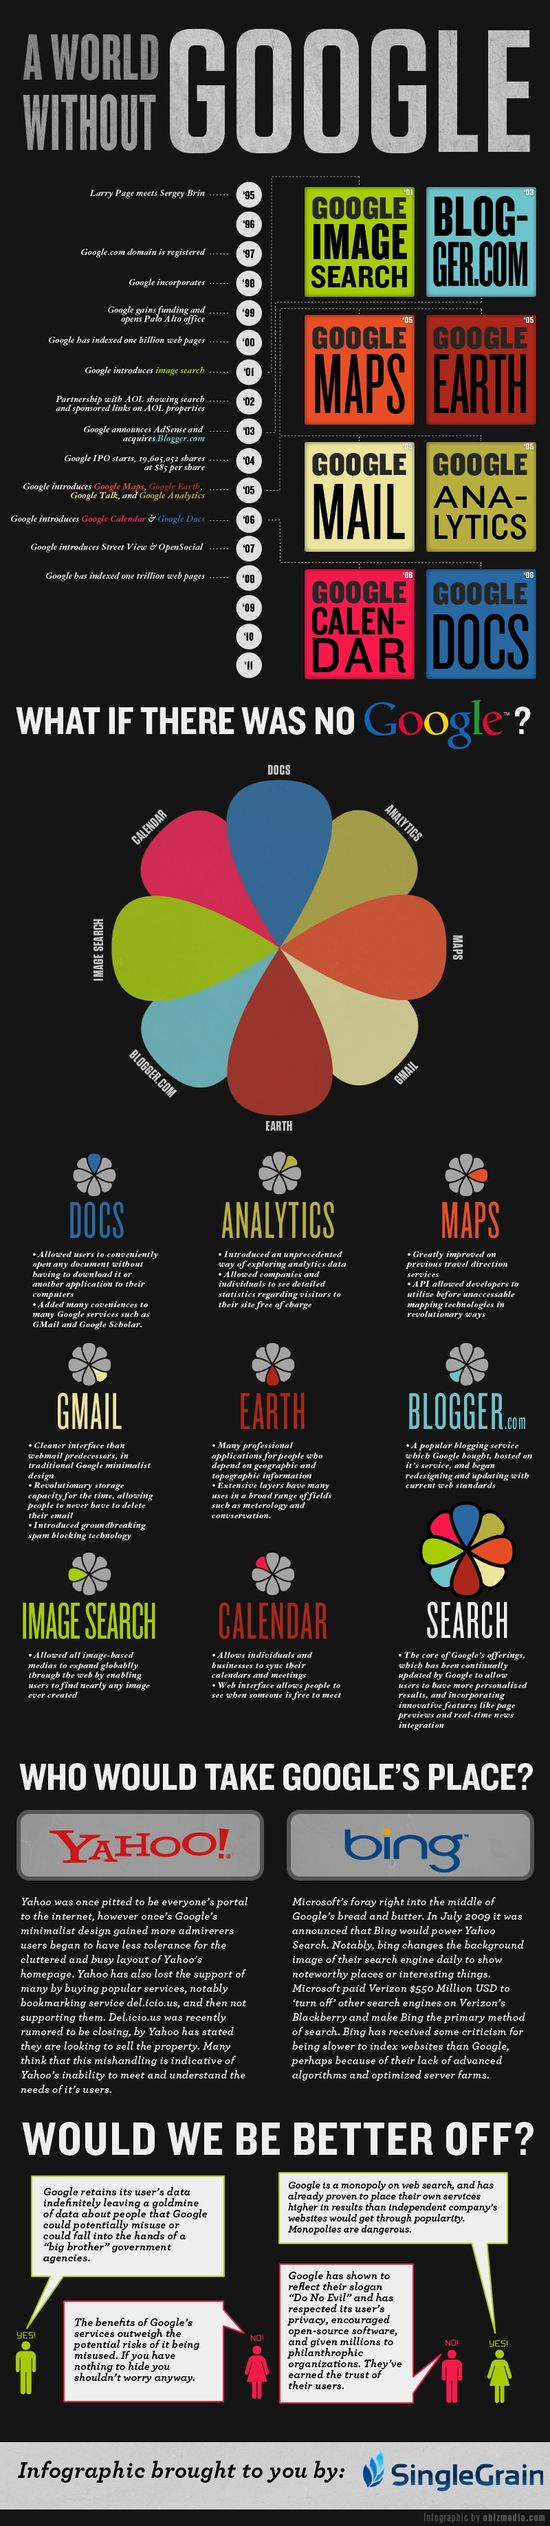 A World without Google. Would we be better off? #infographic